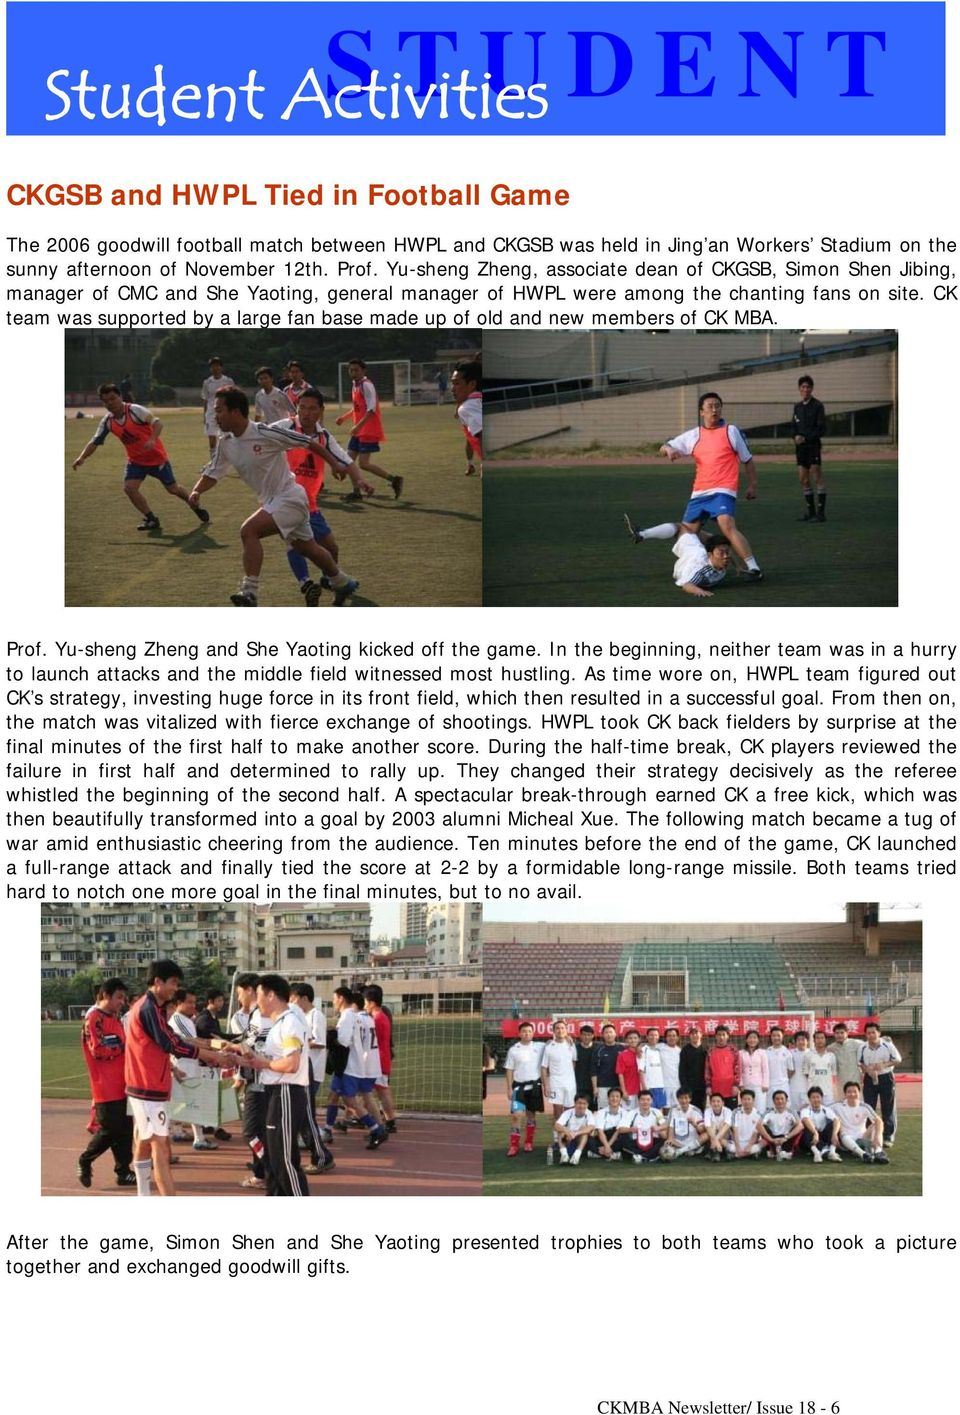 CK team was supported by a large fan base made up of old and new members of CK MBA. Prof. Yu-sheng Zheng and She Yaoting kicked off the game.